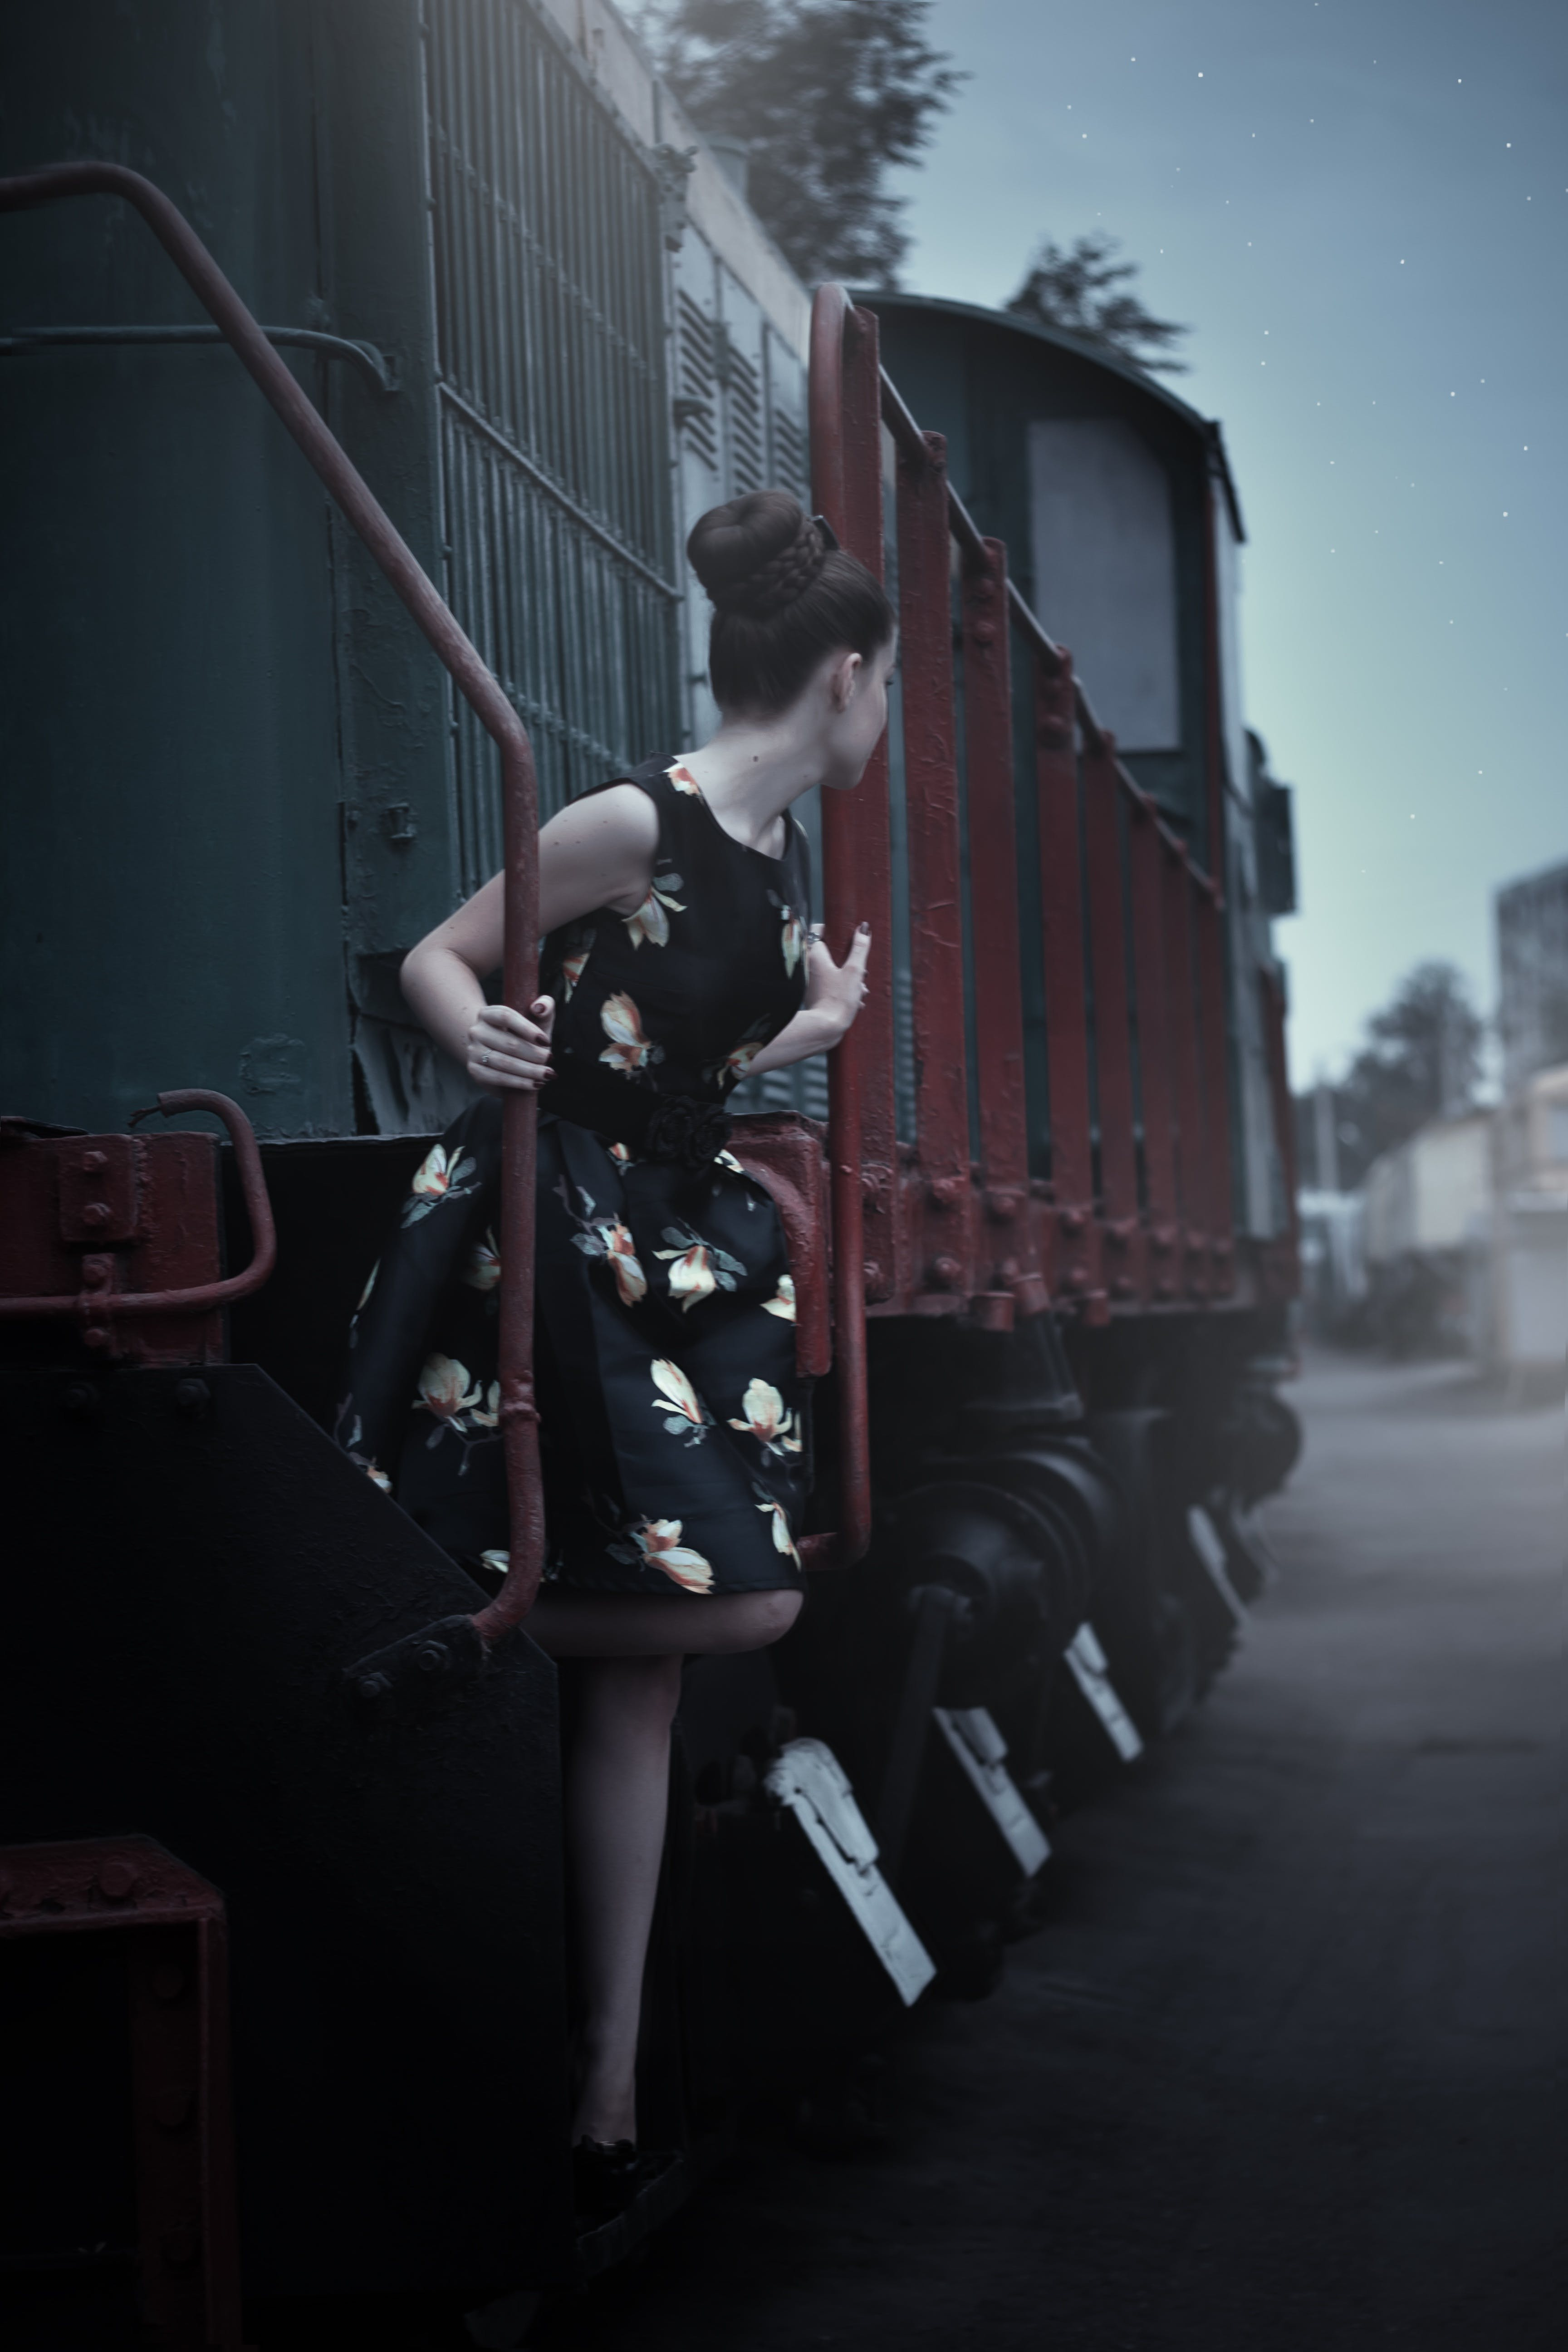 Woman in Black Sleeveless Dress Standing Beside Train